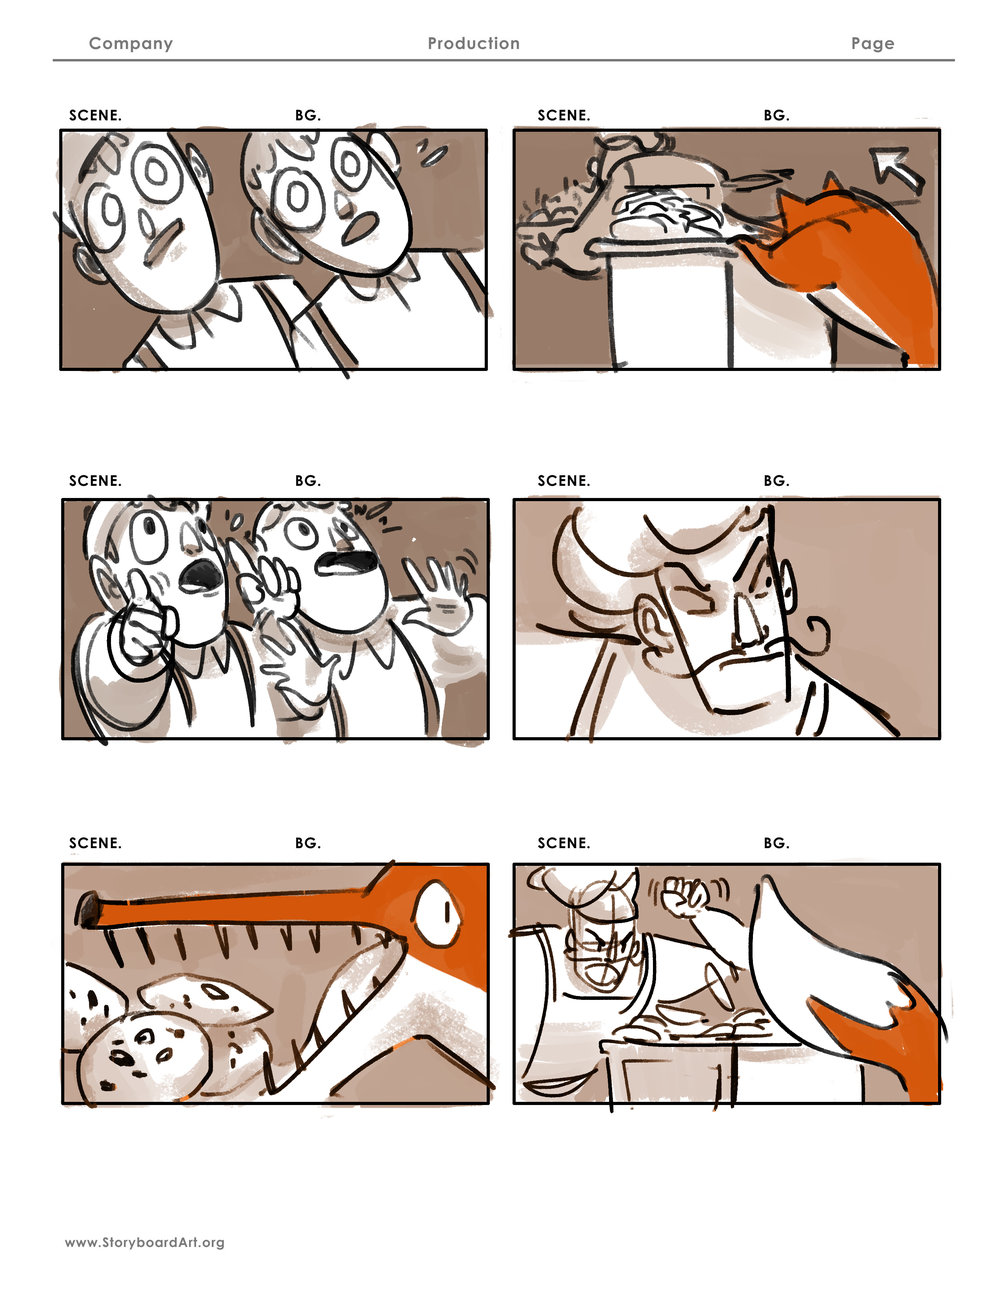 james storyboards page 7.jpg